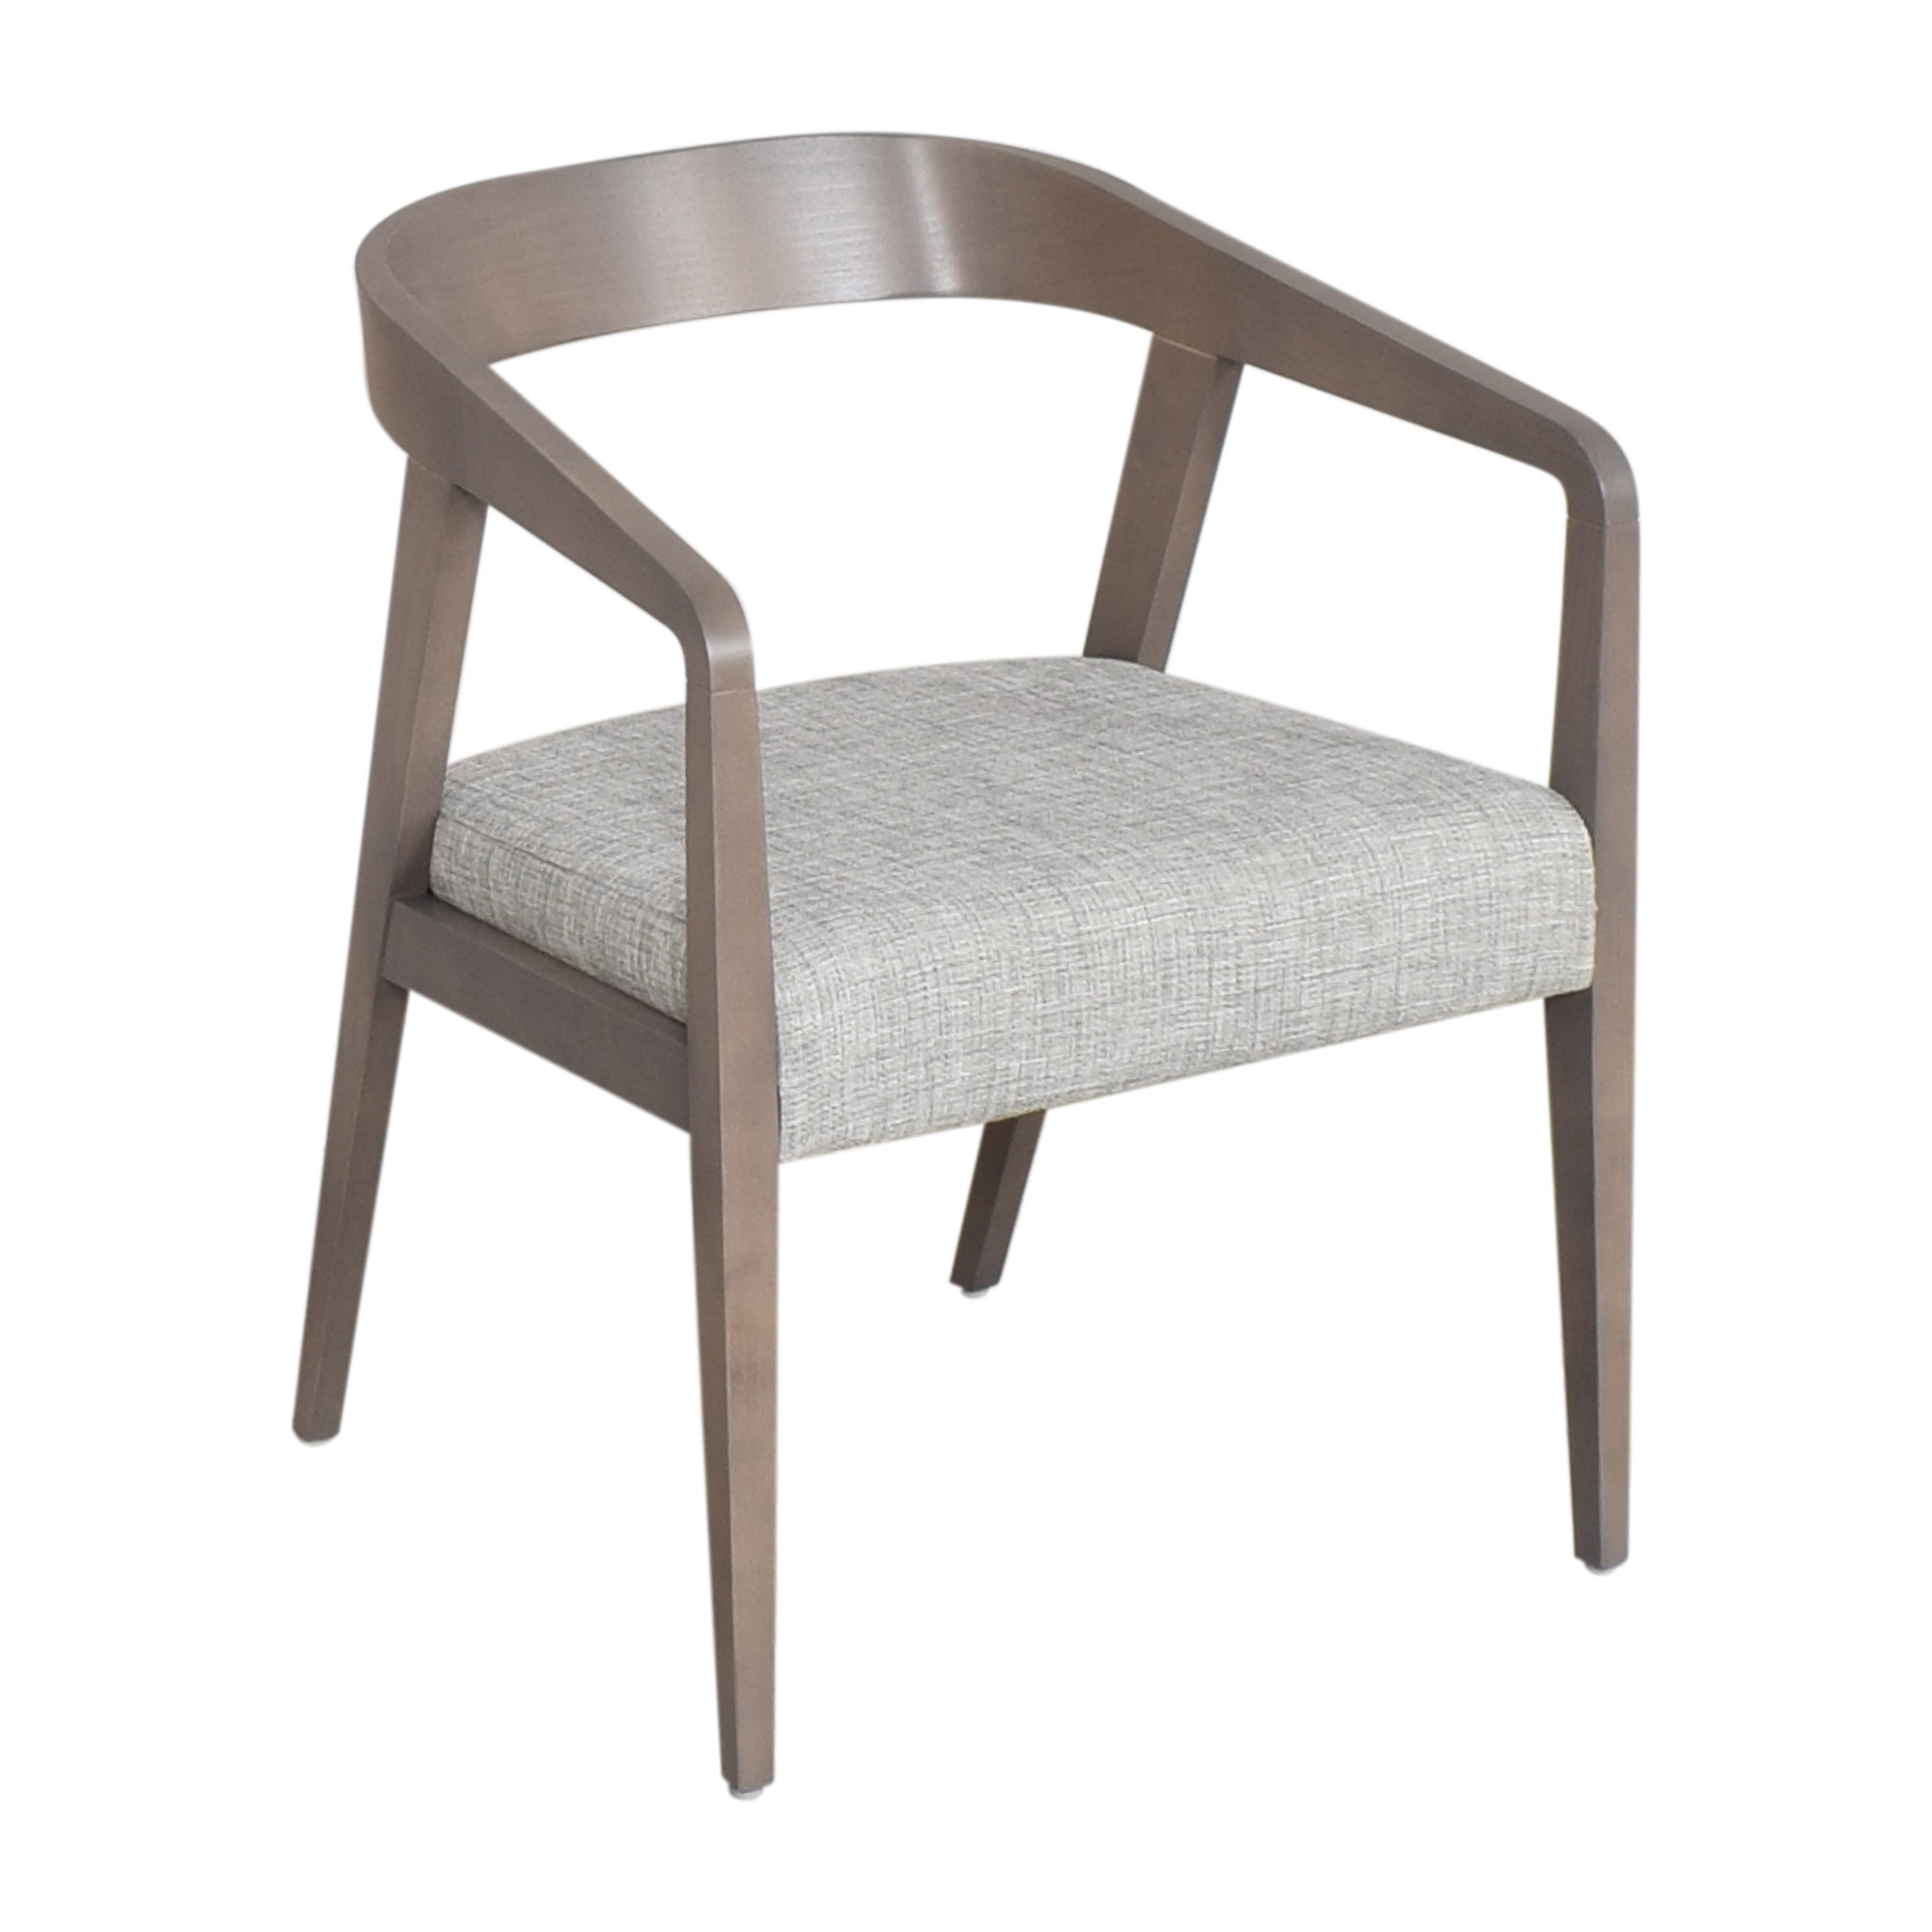 buy Global Furniture Group Global Furniture Group Chap Round Back Upholstered Armchair online